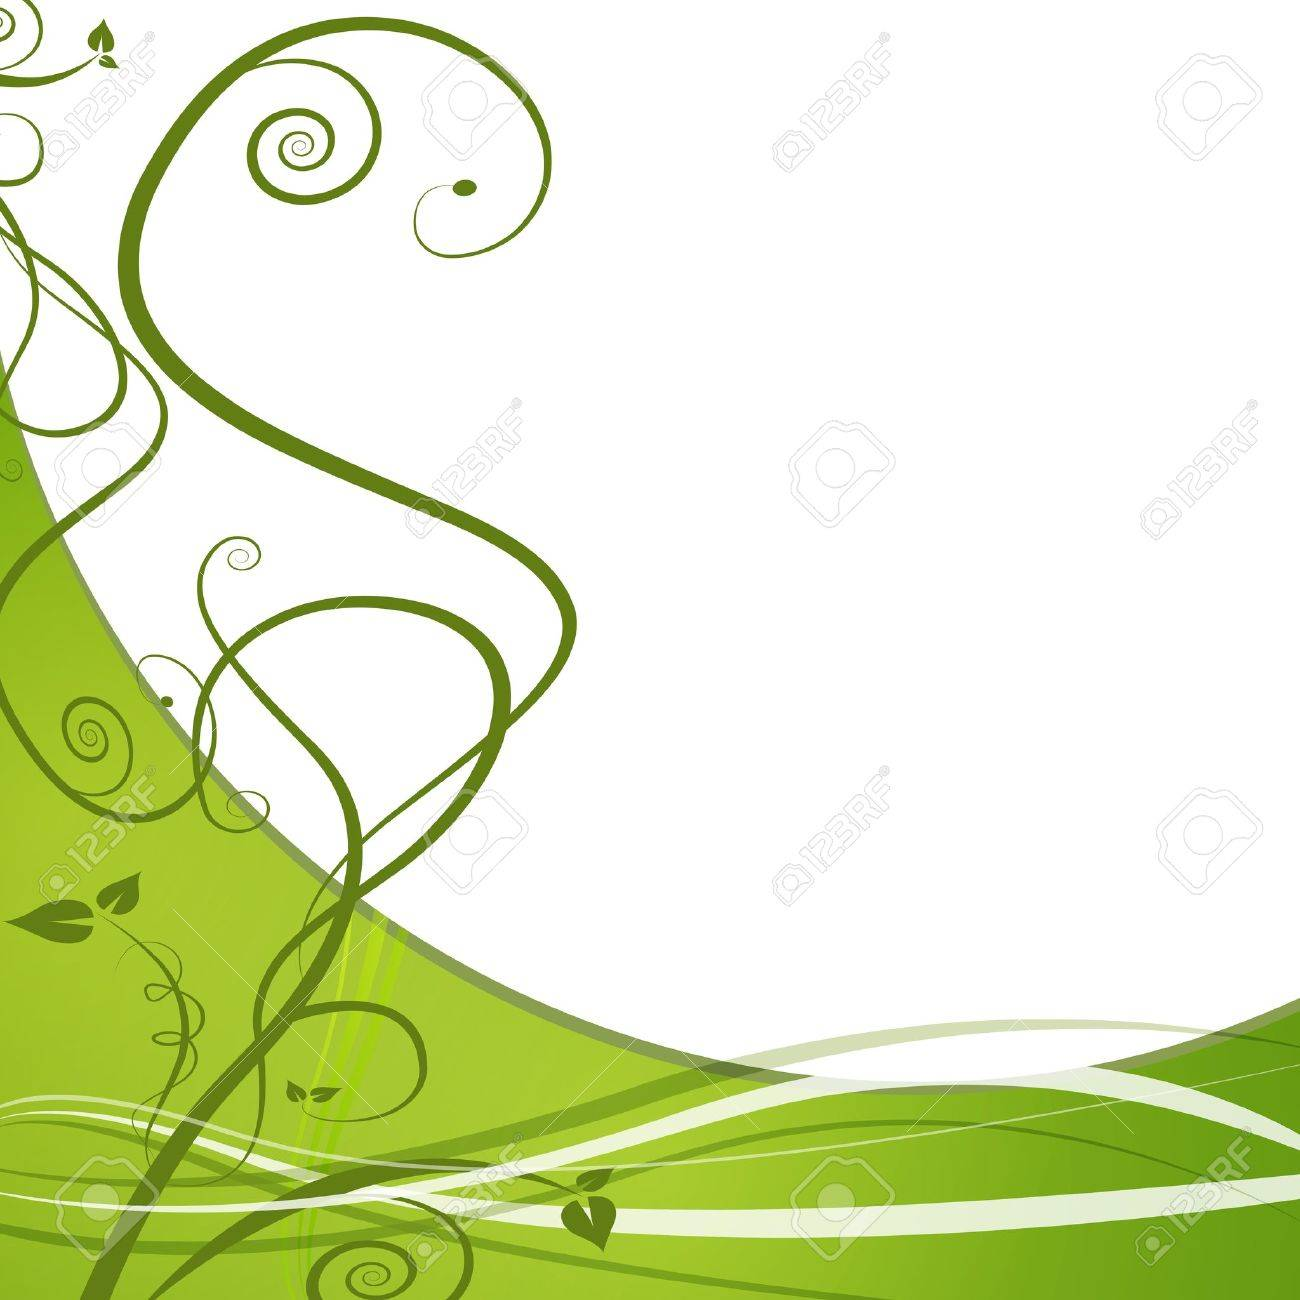 An image of a green vine leaf abstract background. Stock Vector - 9721702